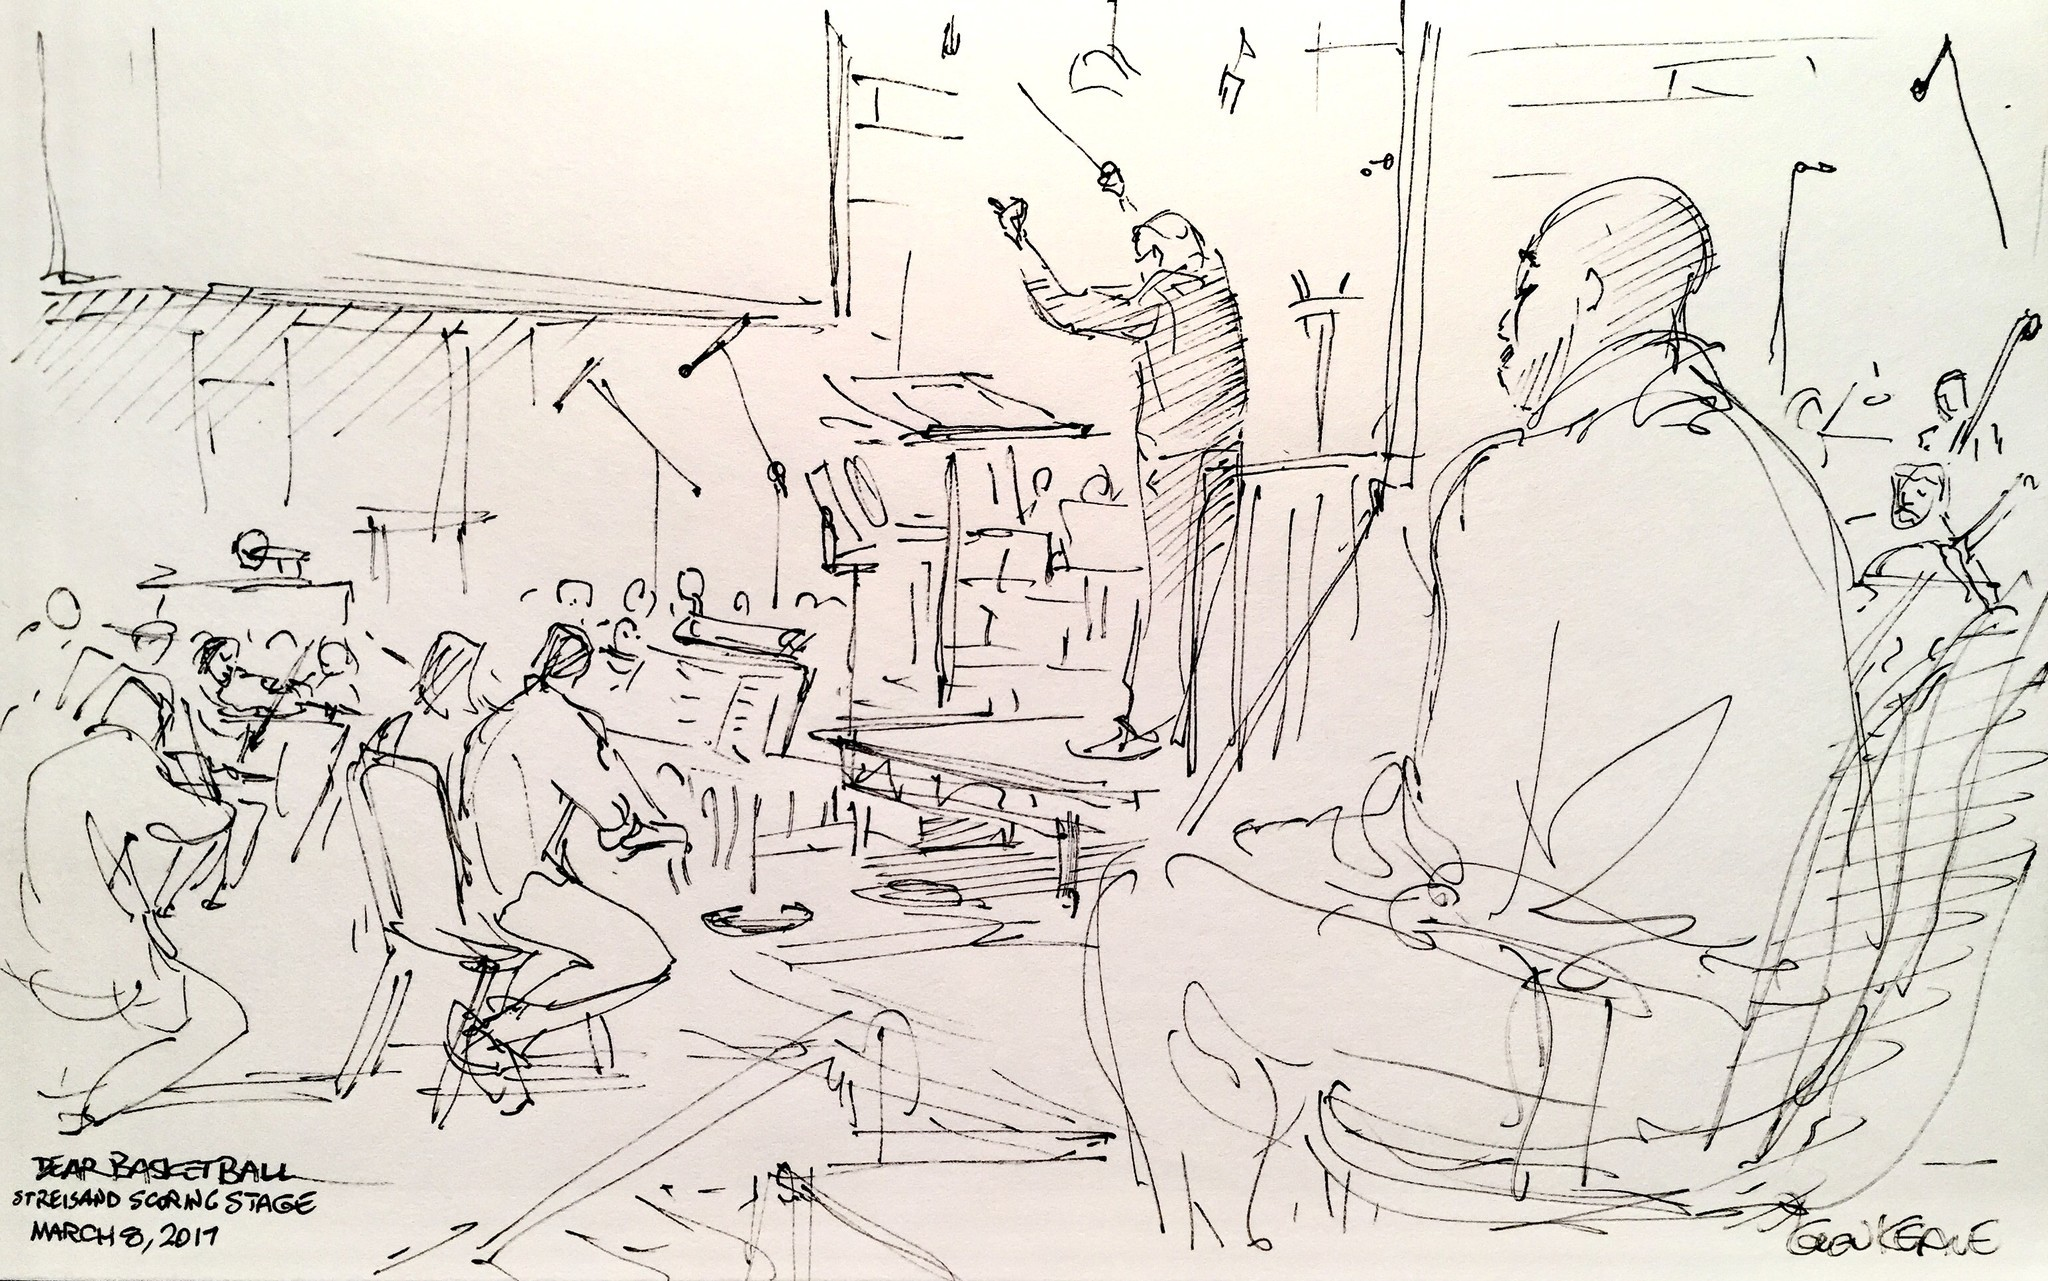 Glen Keane's sketch of John Williams conducting the orchestral score for Kobe Bryant's short film, with Bryant pictured listening in the foreground.